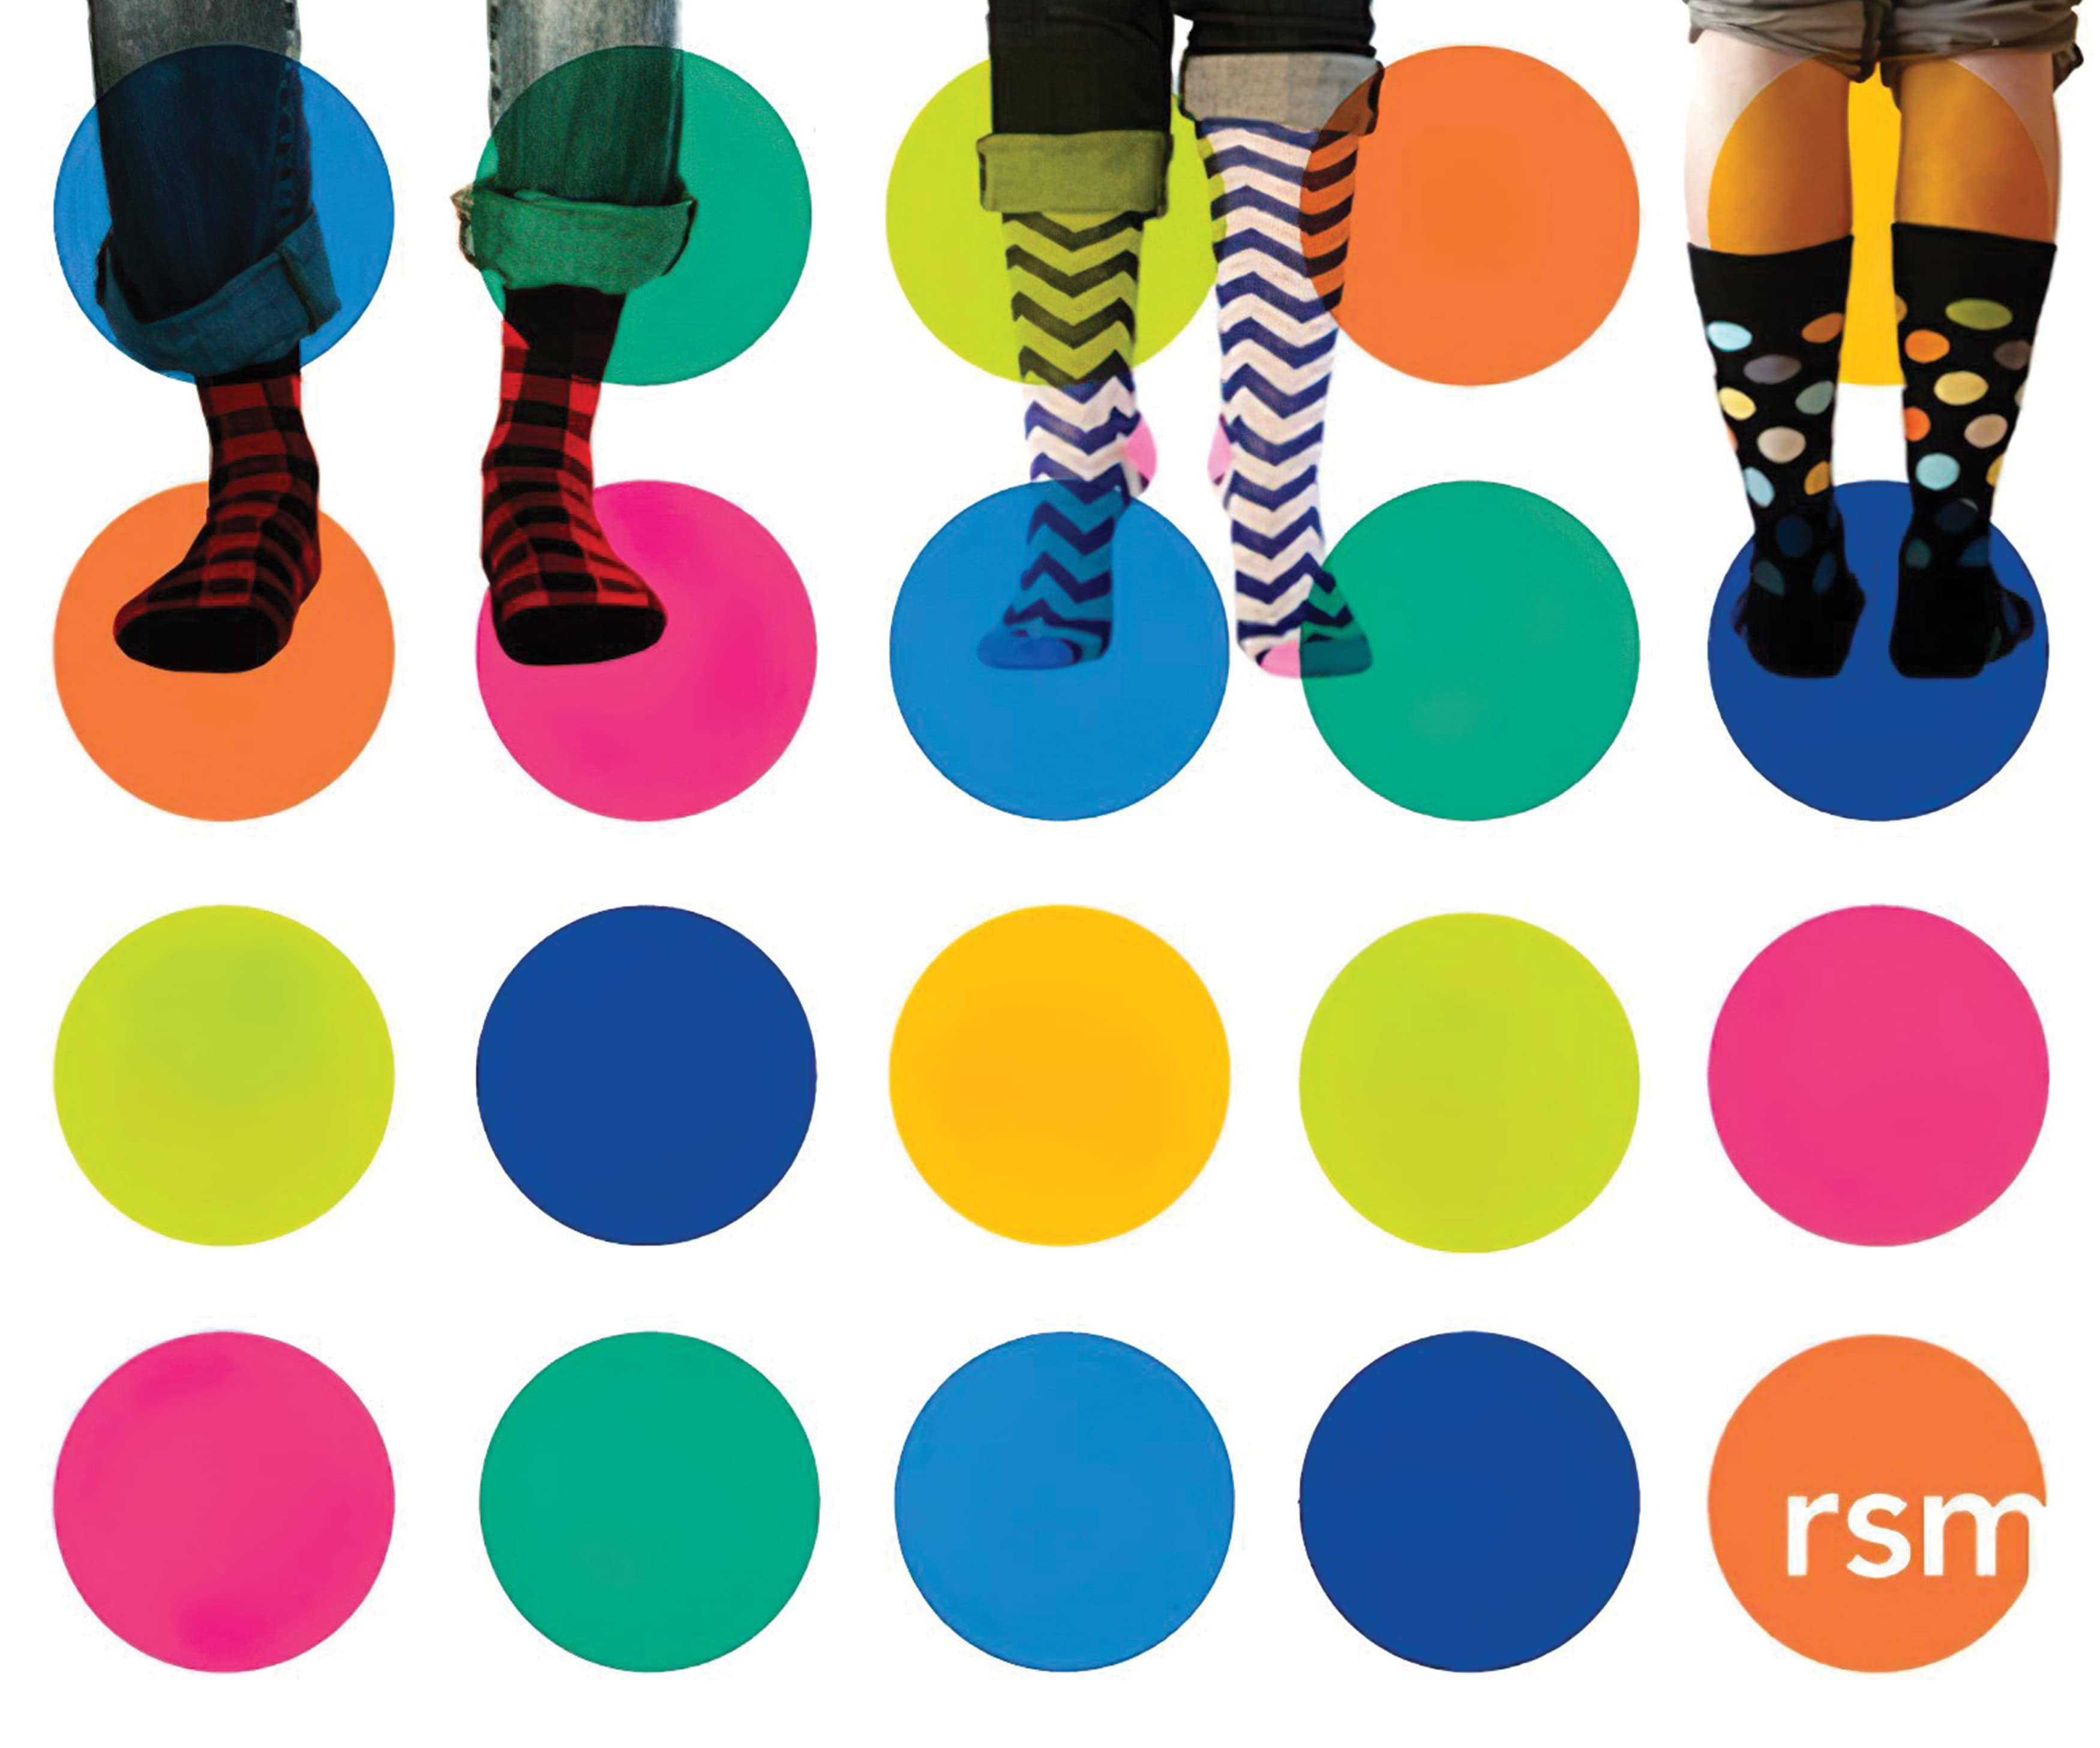 A graphic depicting socks and the RSM logo along with a pattern of multi-colored dots.